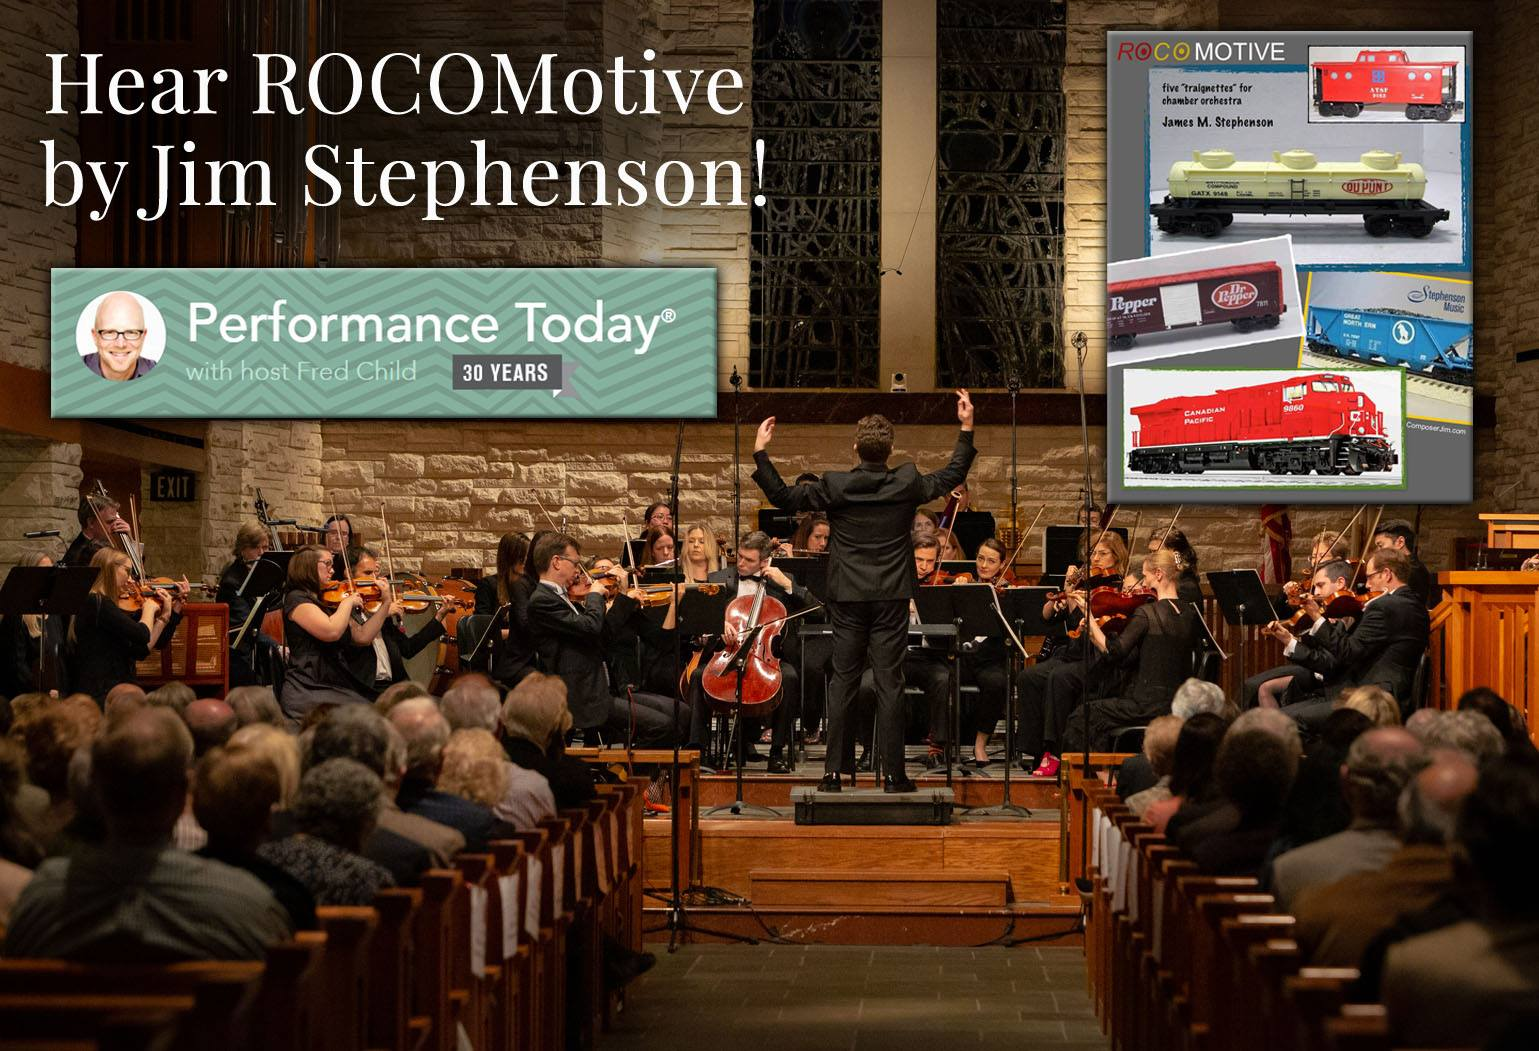 Brett Mitchell leads the River Oaks Chamber Orchestra (Houston) in the world premiere of Jim Stephenson's  ROCOmotive .